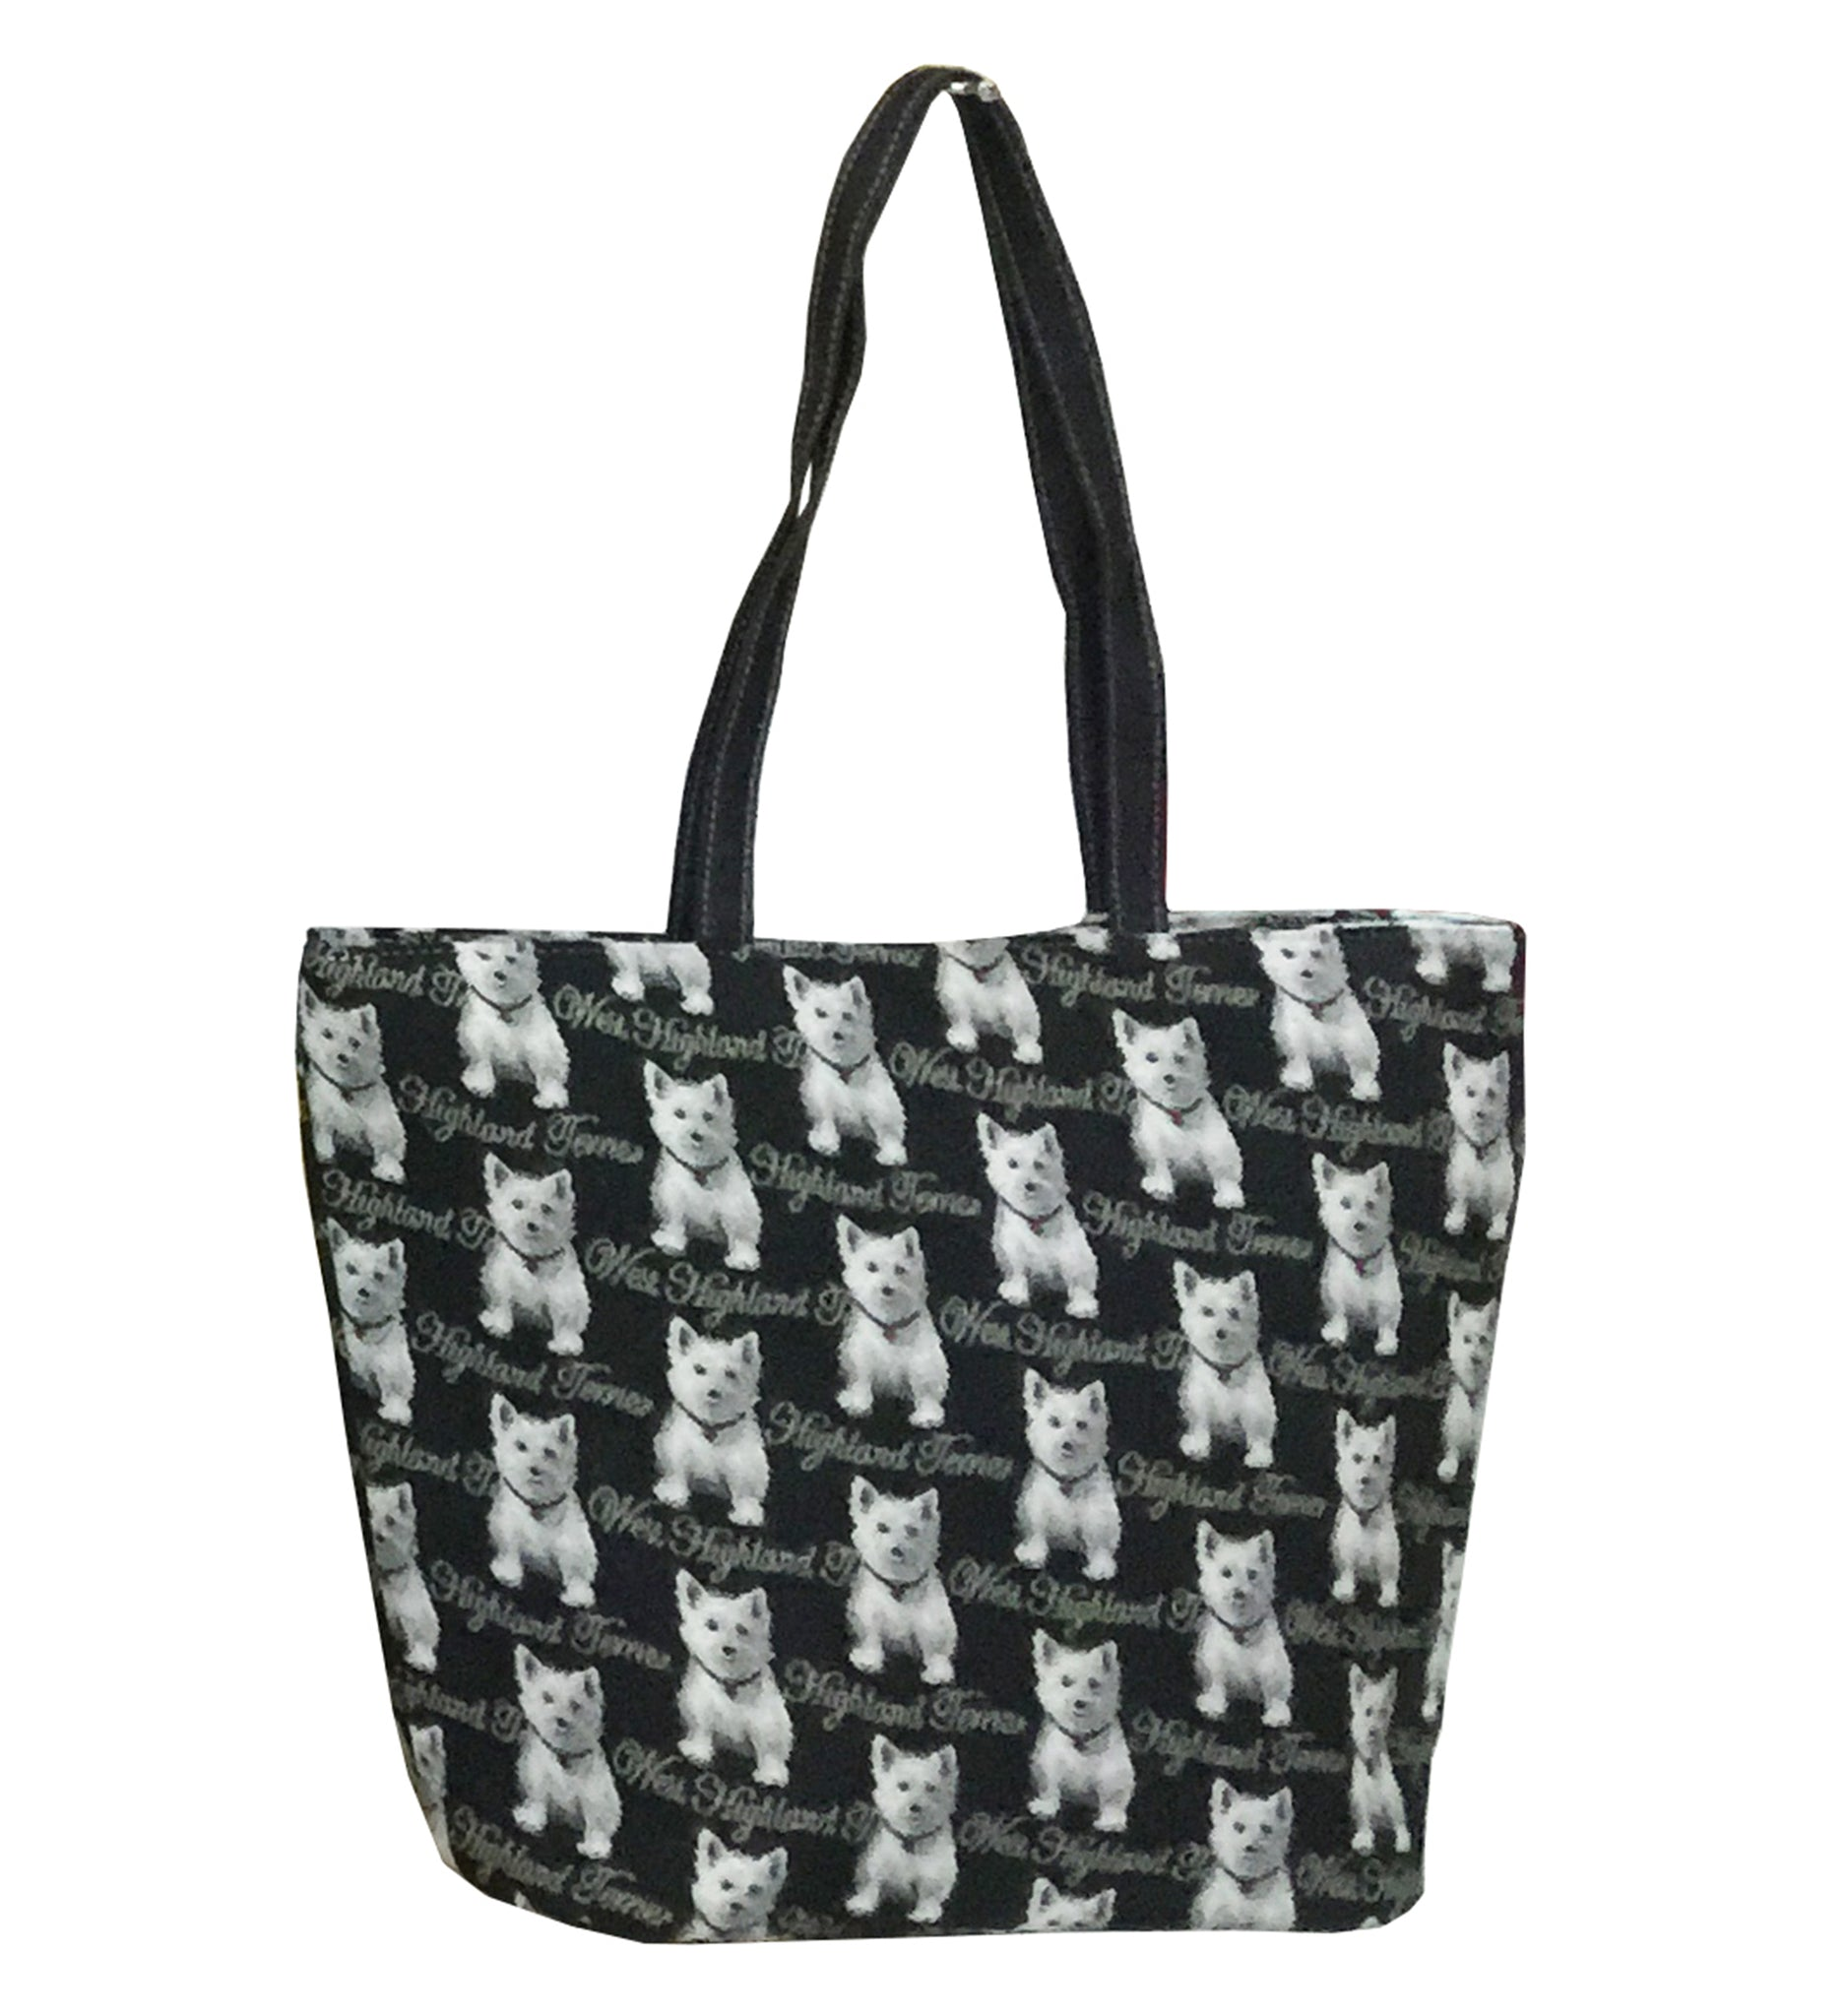 SHOU-WES | WESTIE DOG SHOULDER BAG TOTE HANDBAG - www.signareusa.com